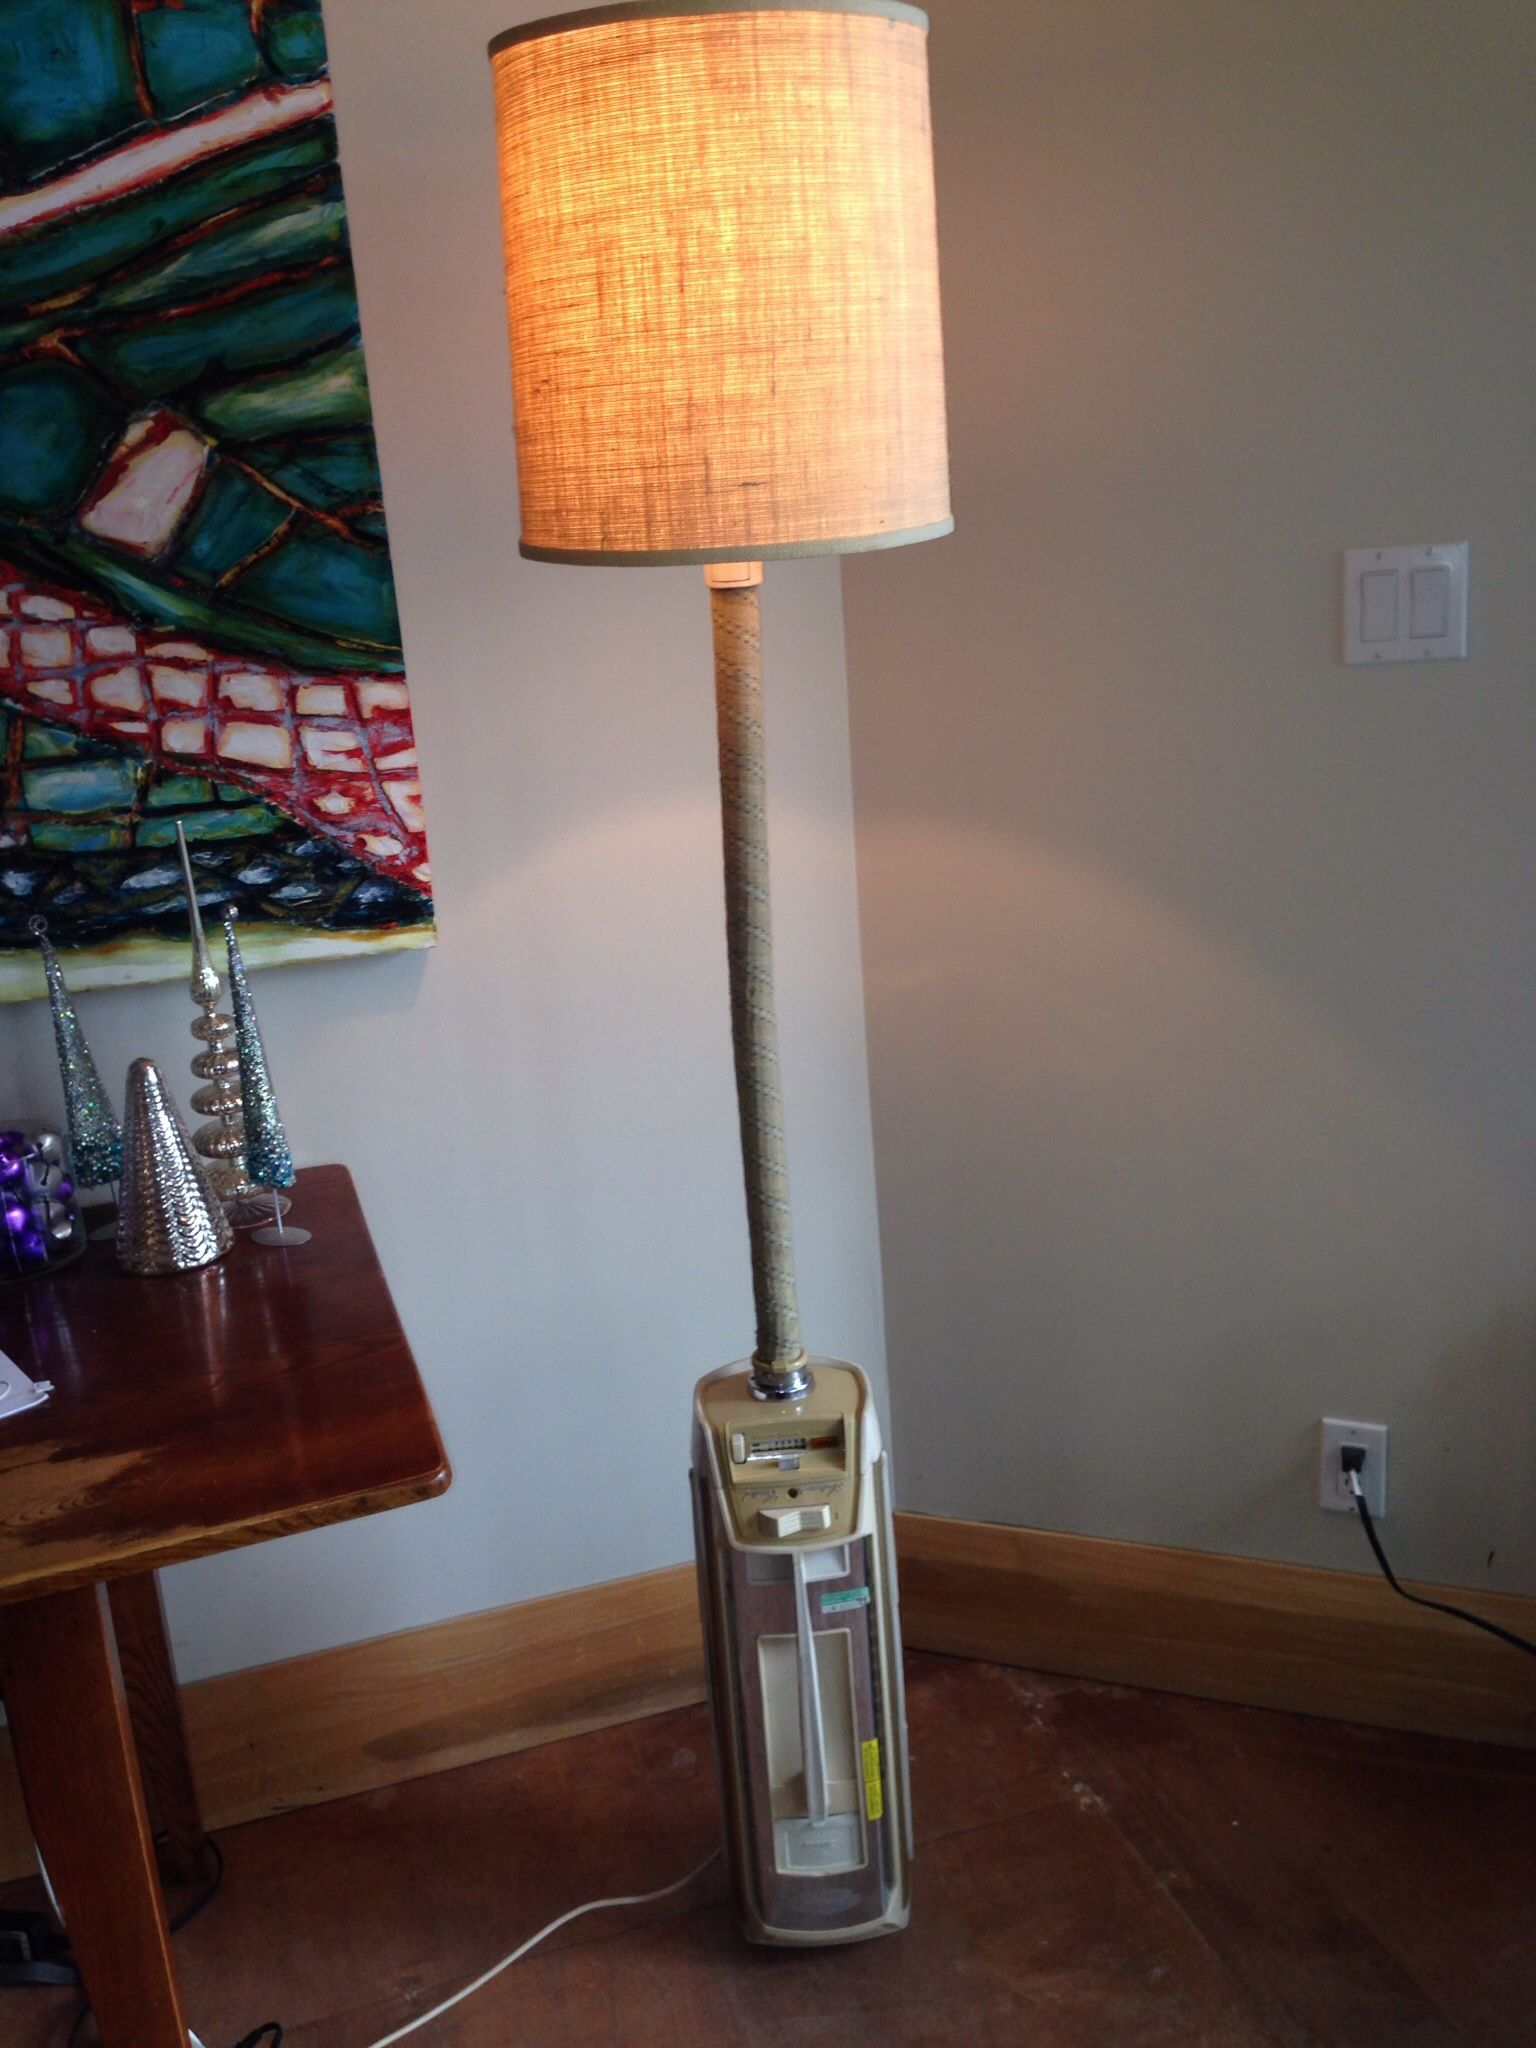 Upcycled Lamp Ideas - Easy Craft Ideas